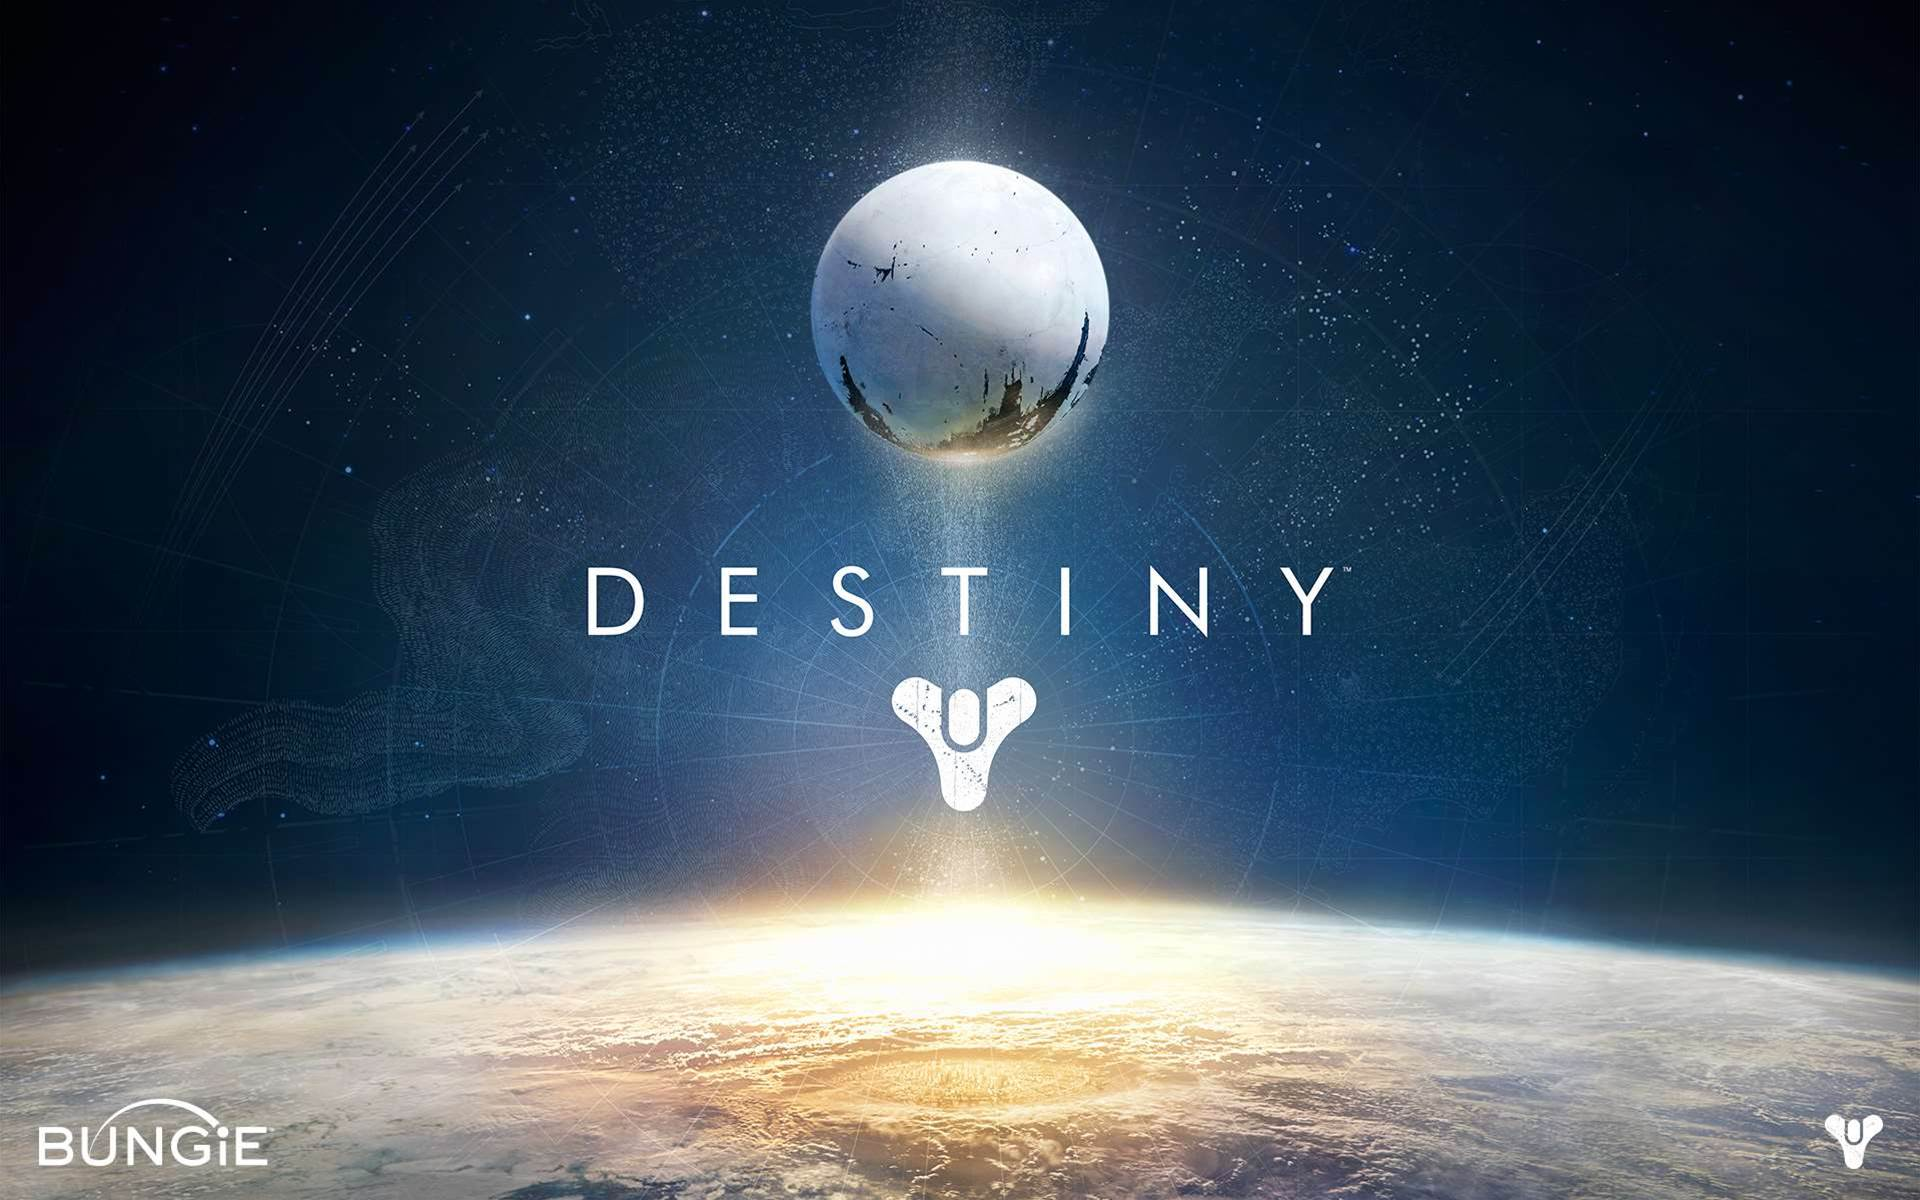 Destiny has not 'sold' $500 million worth on day one